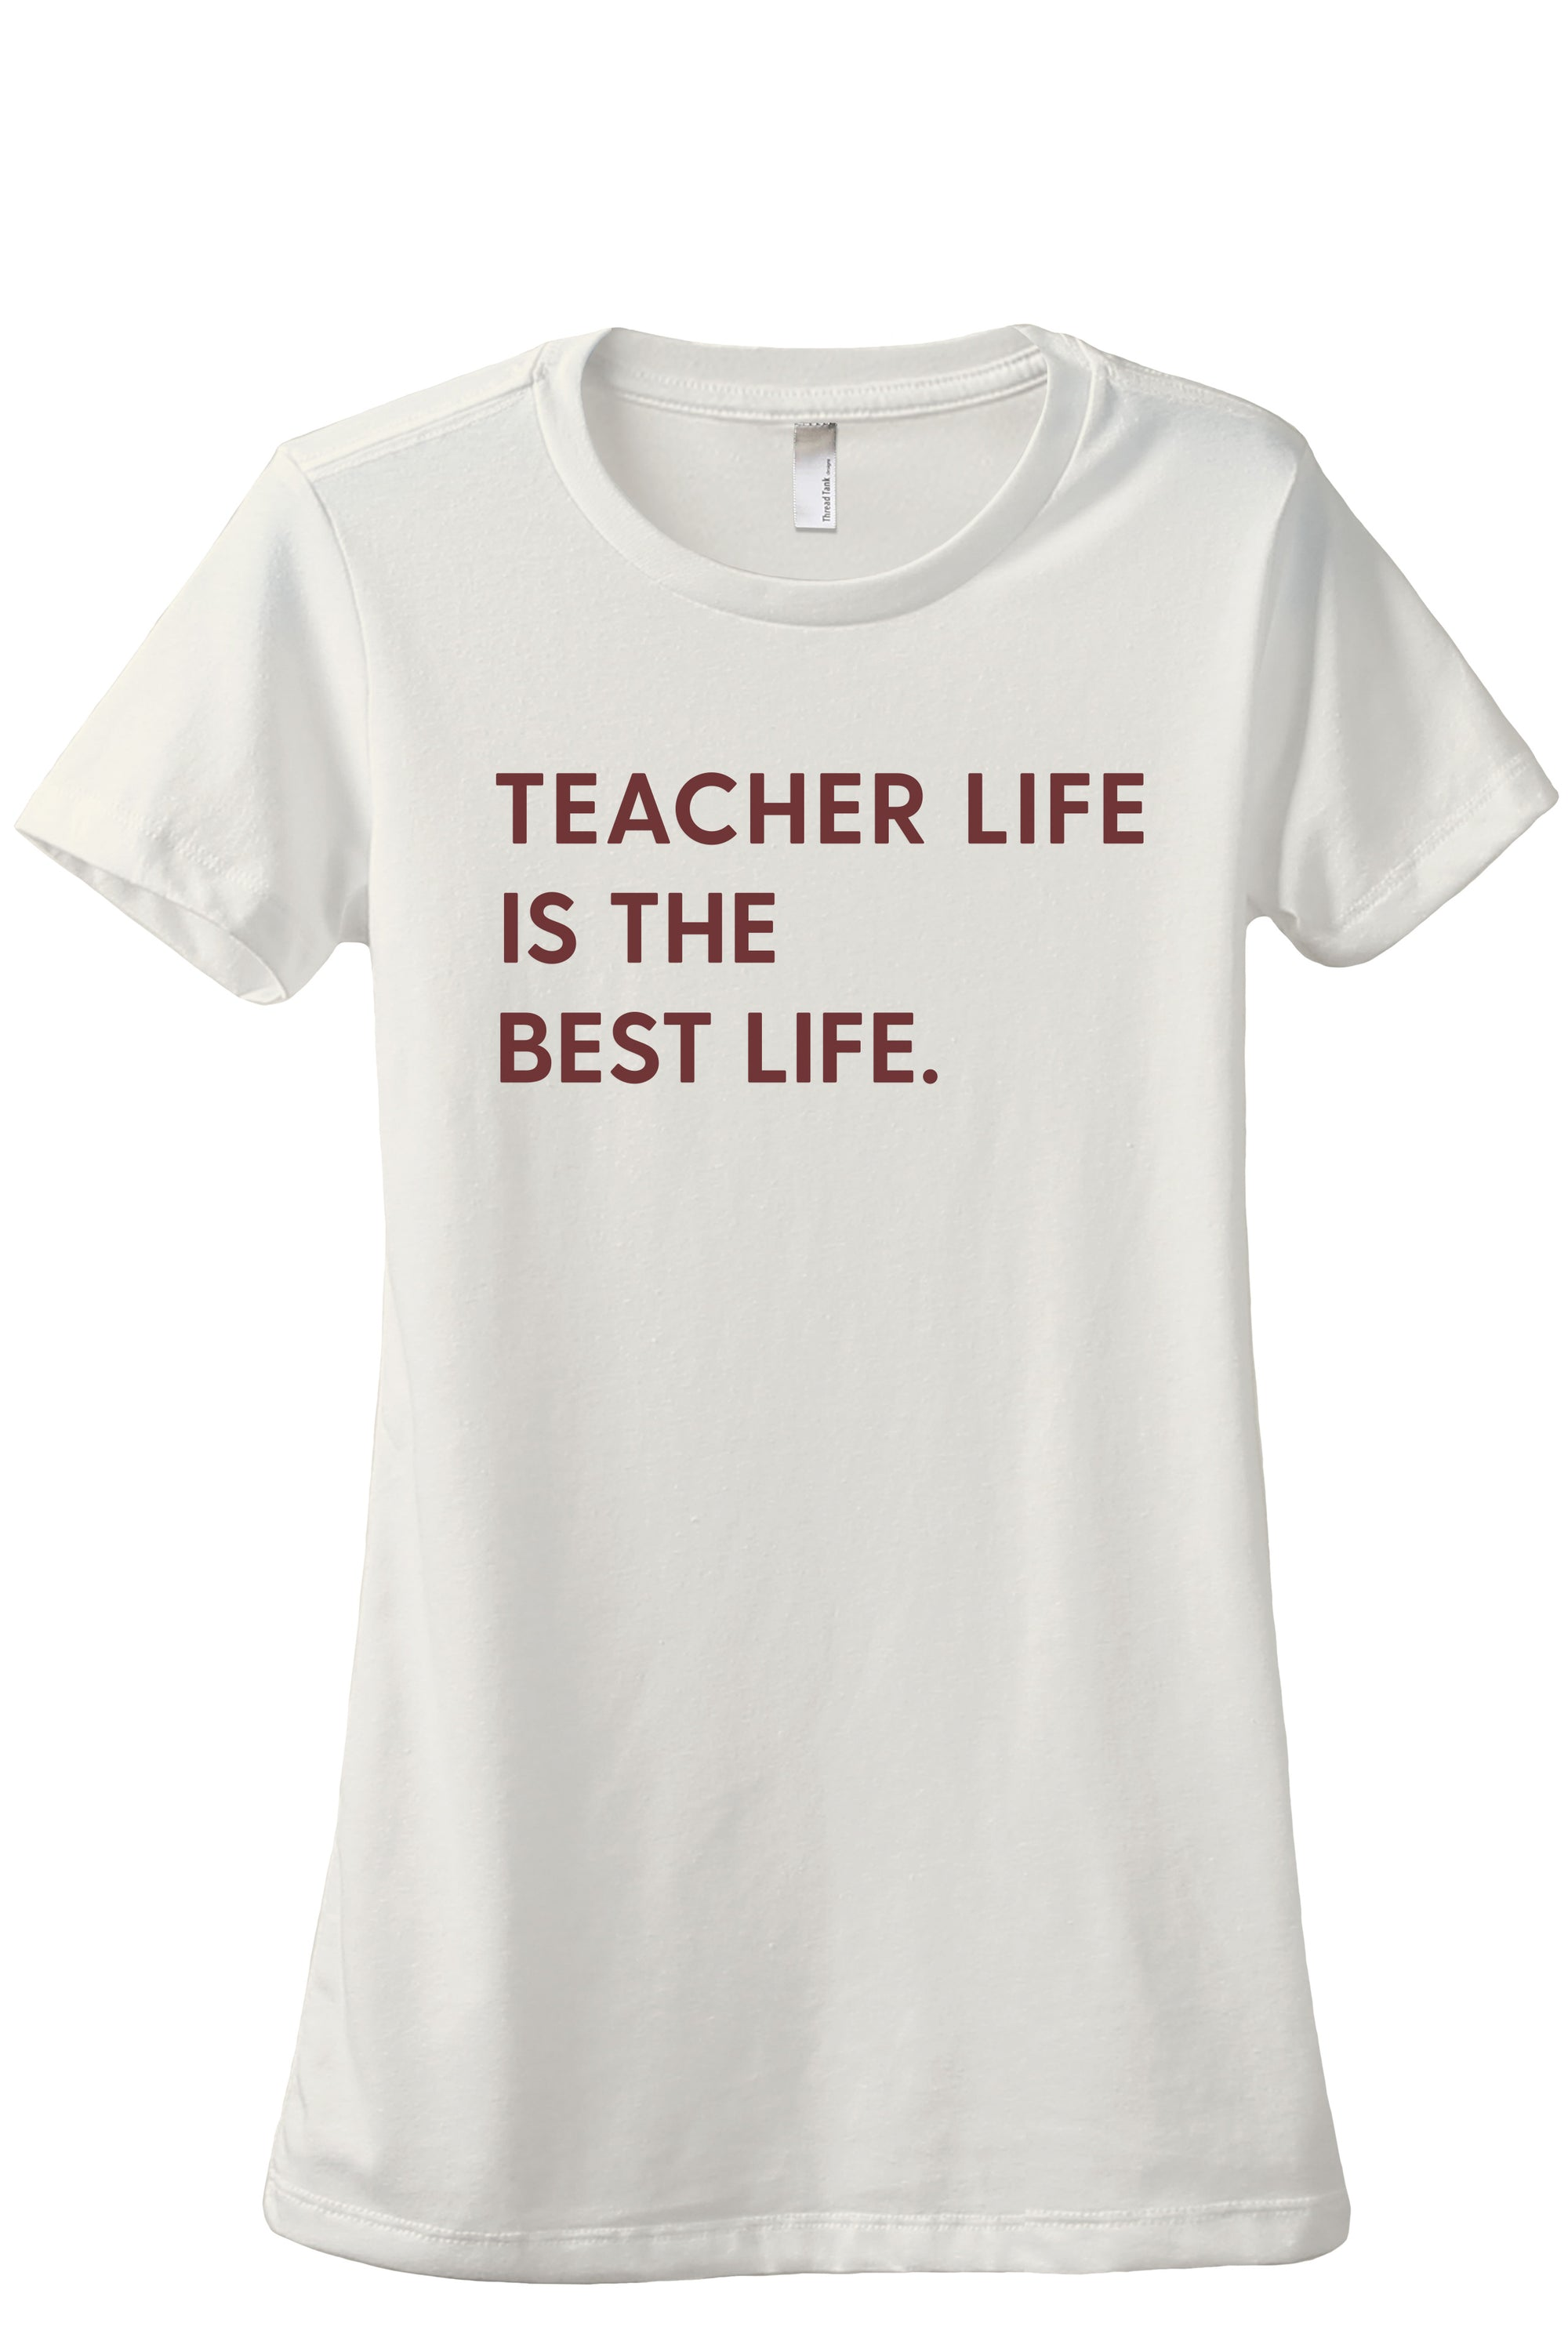 Teacher Life Is The Best Life Women's Relaxed Crewneck T-Shirt Top Tee Vintage White Scarlet